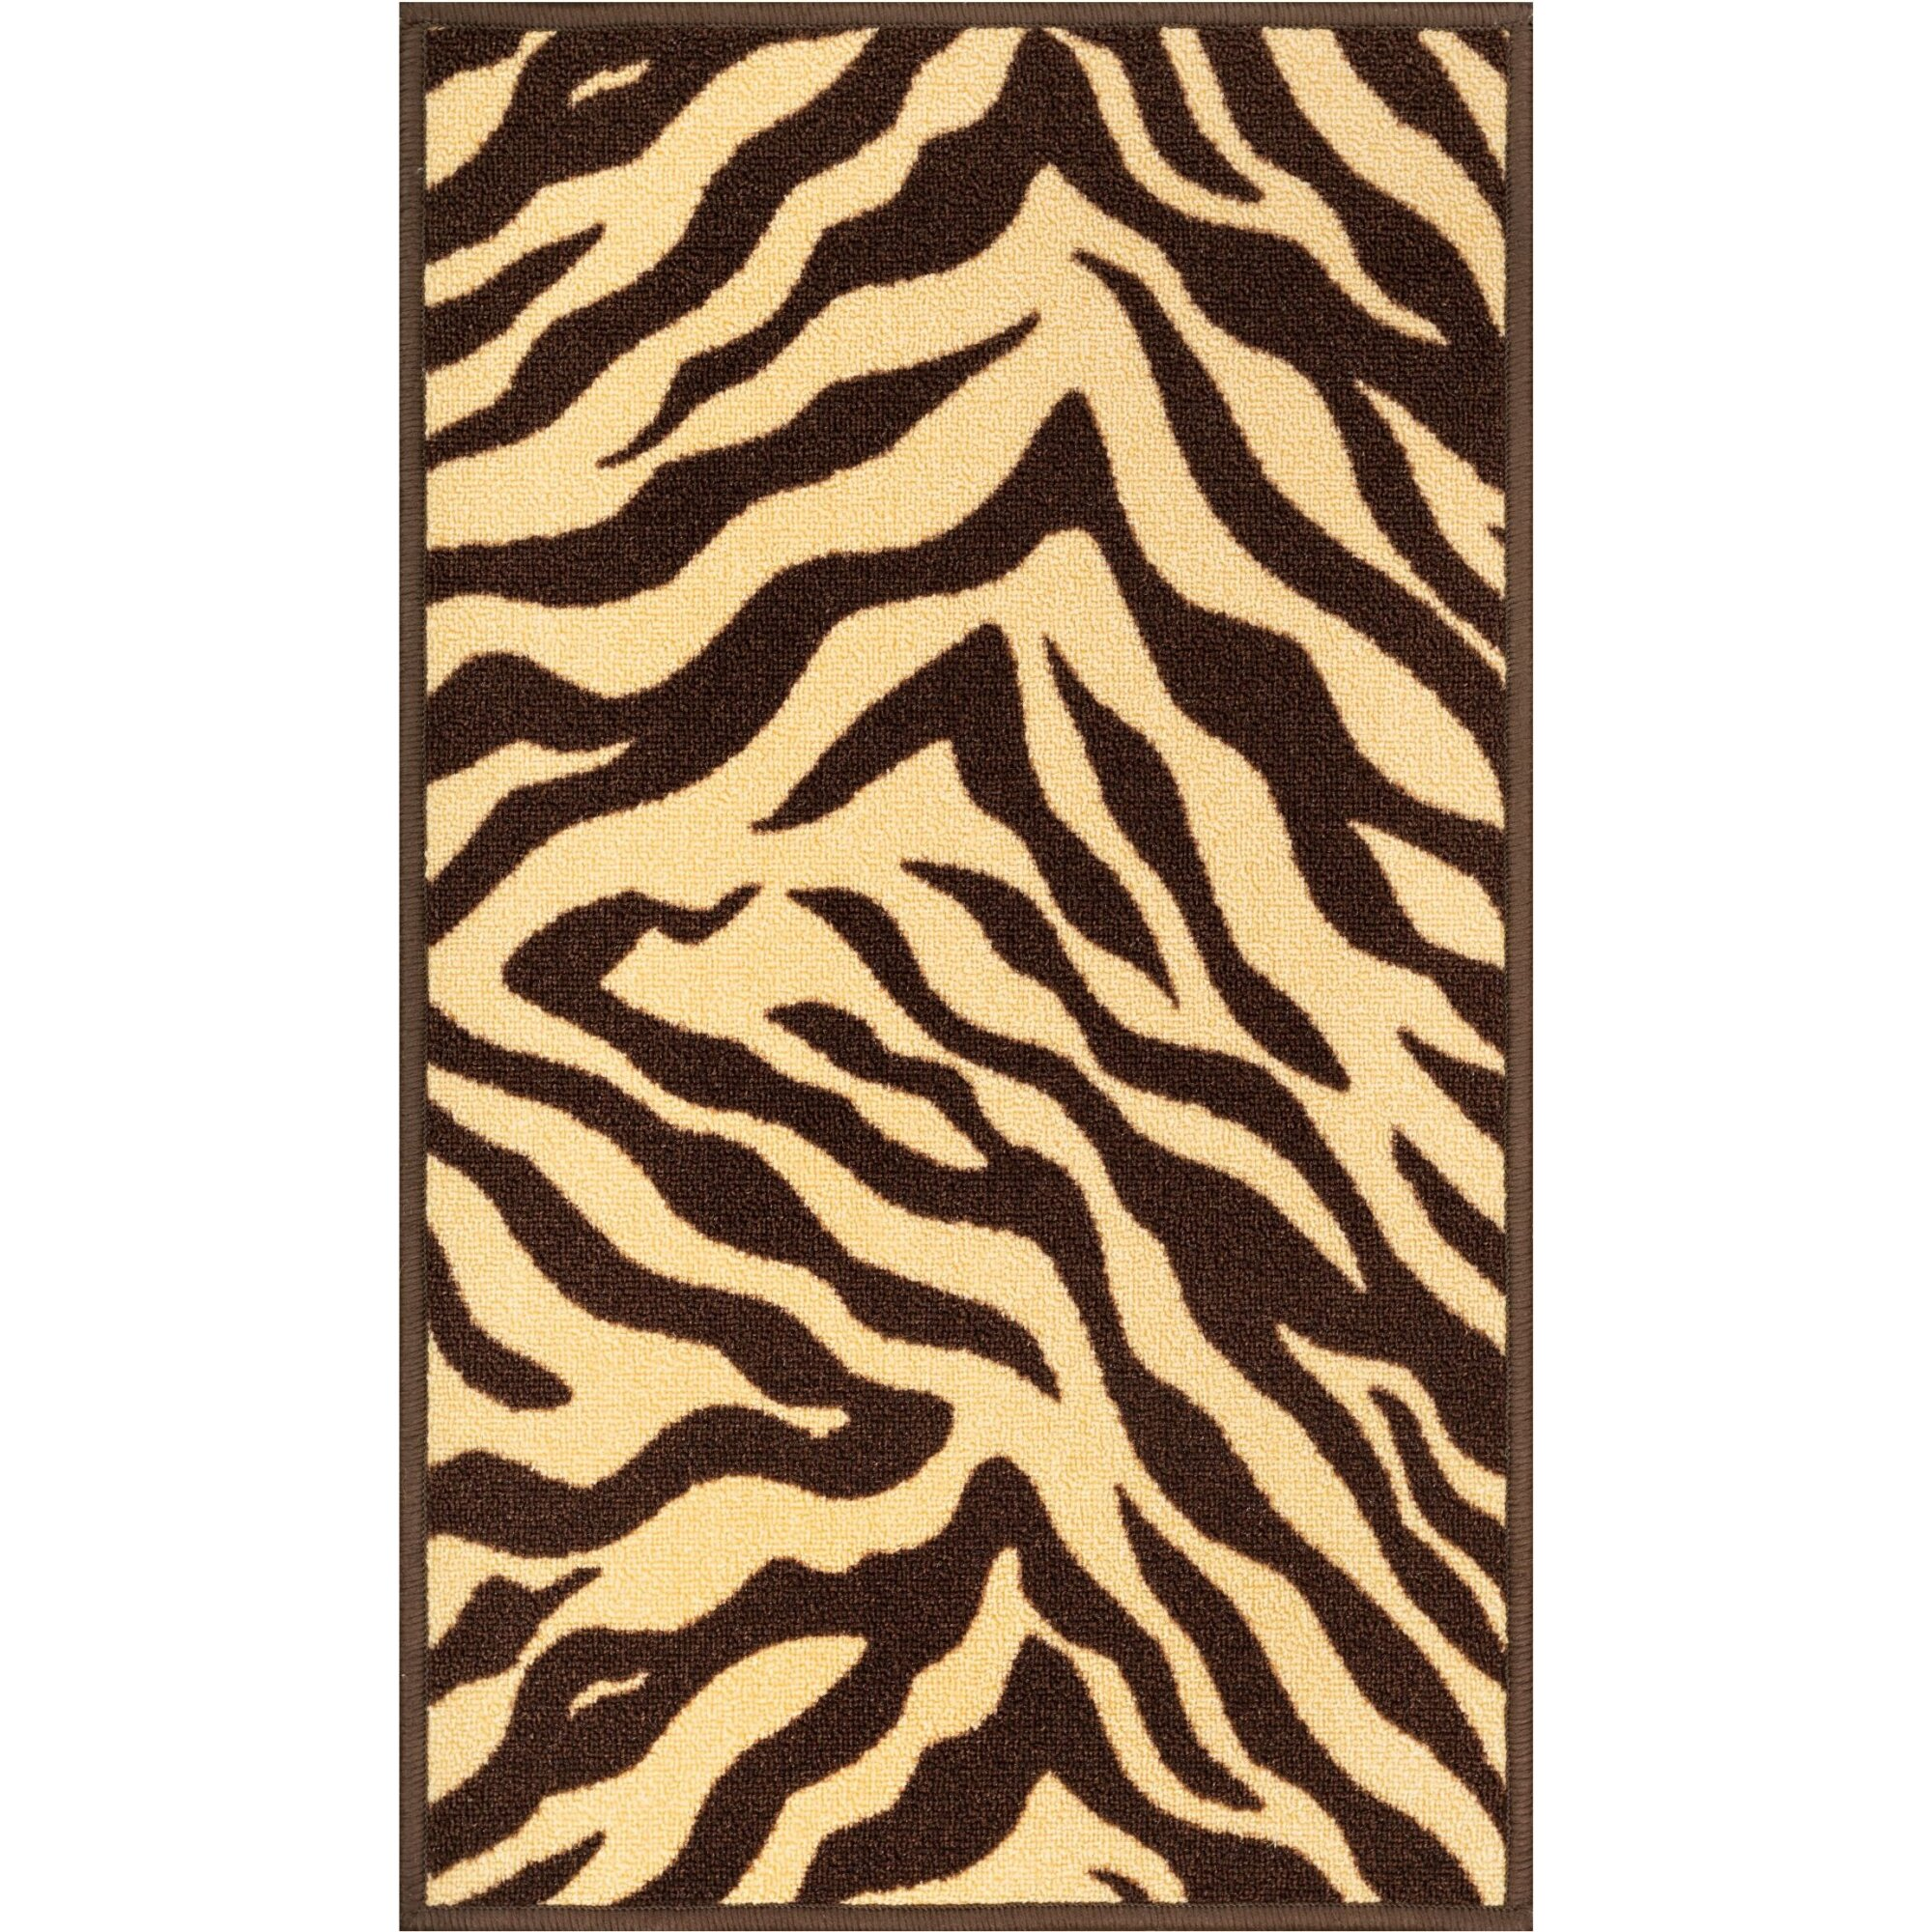 Well Woven Kings Court Brown Zebra Animal Print Rug